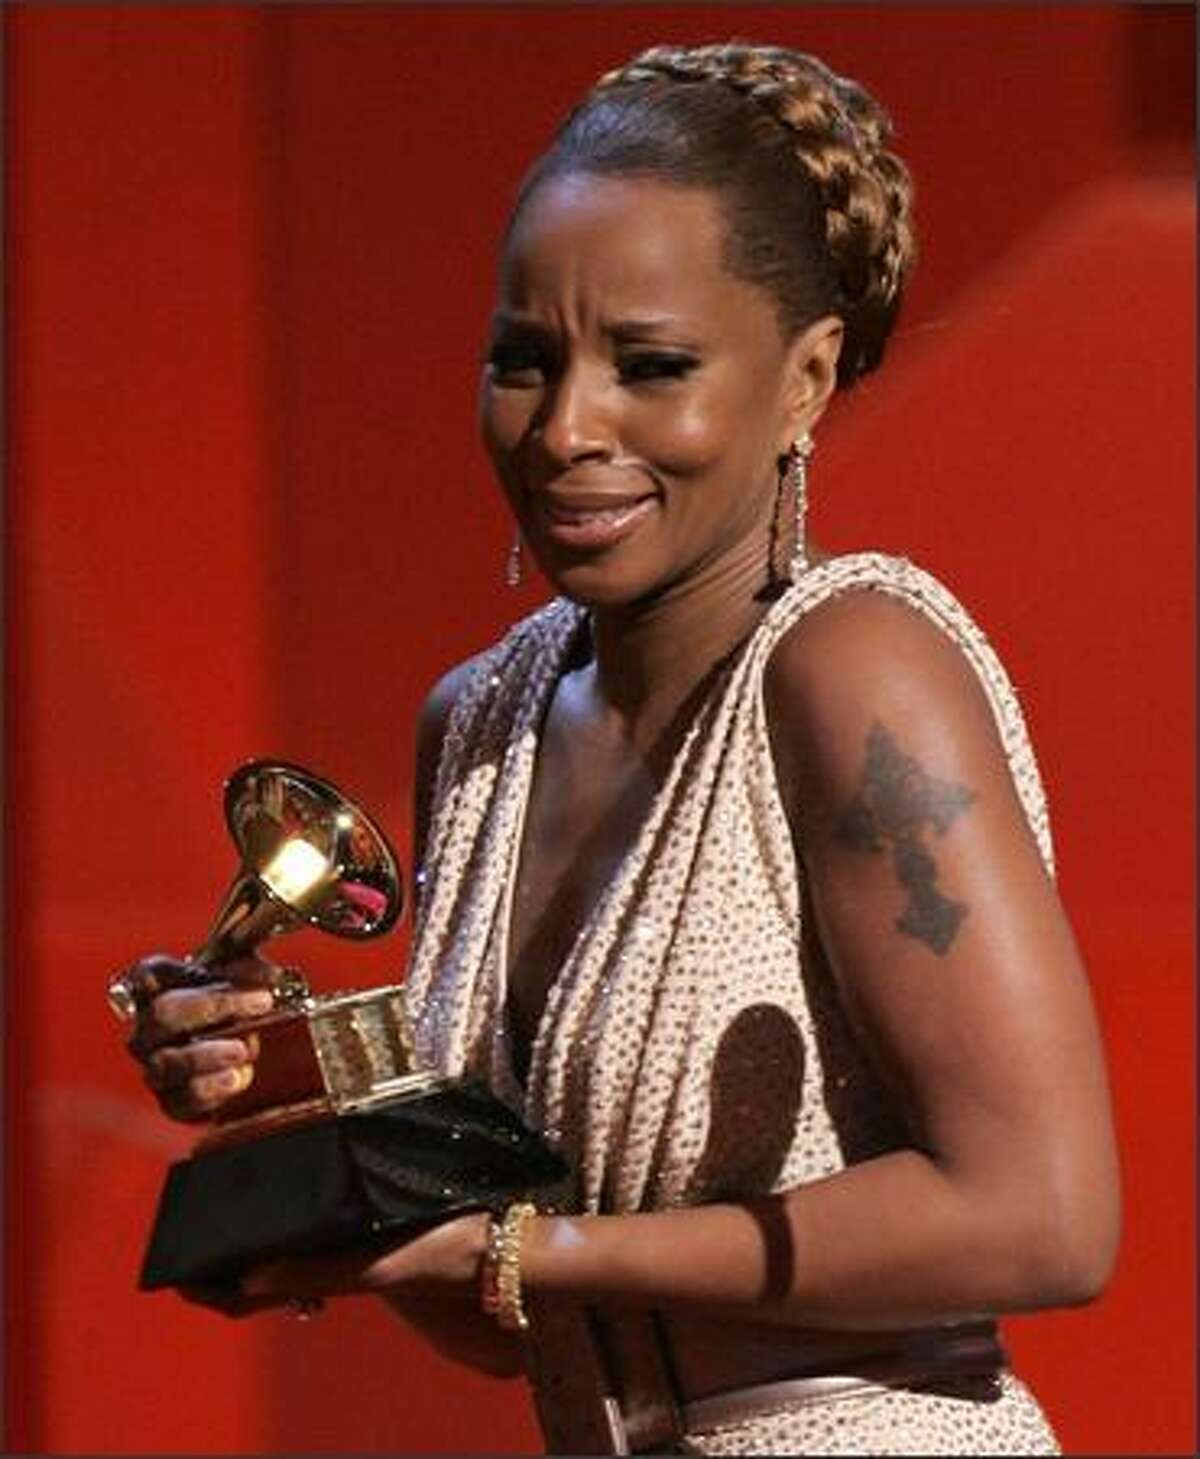 A tearful Mary J. Blige accepts the award for best female R&B vocal performance for